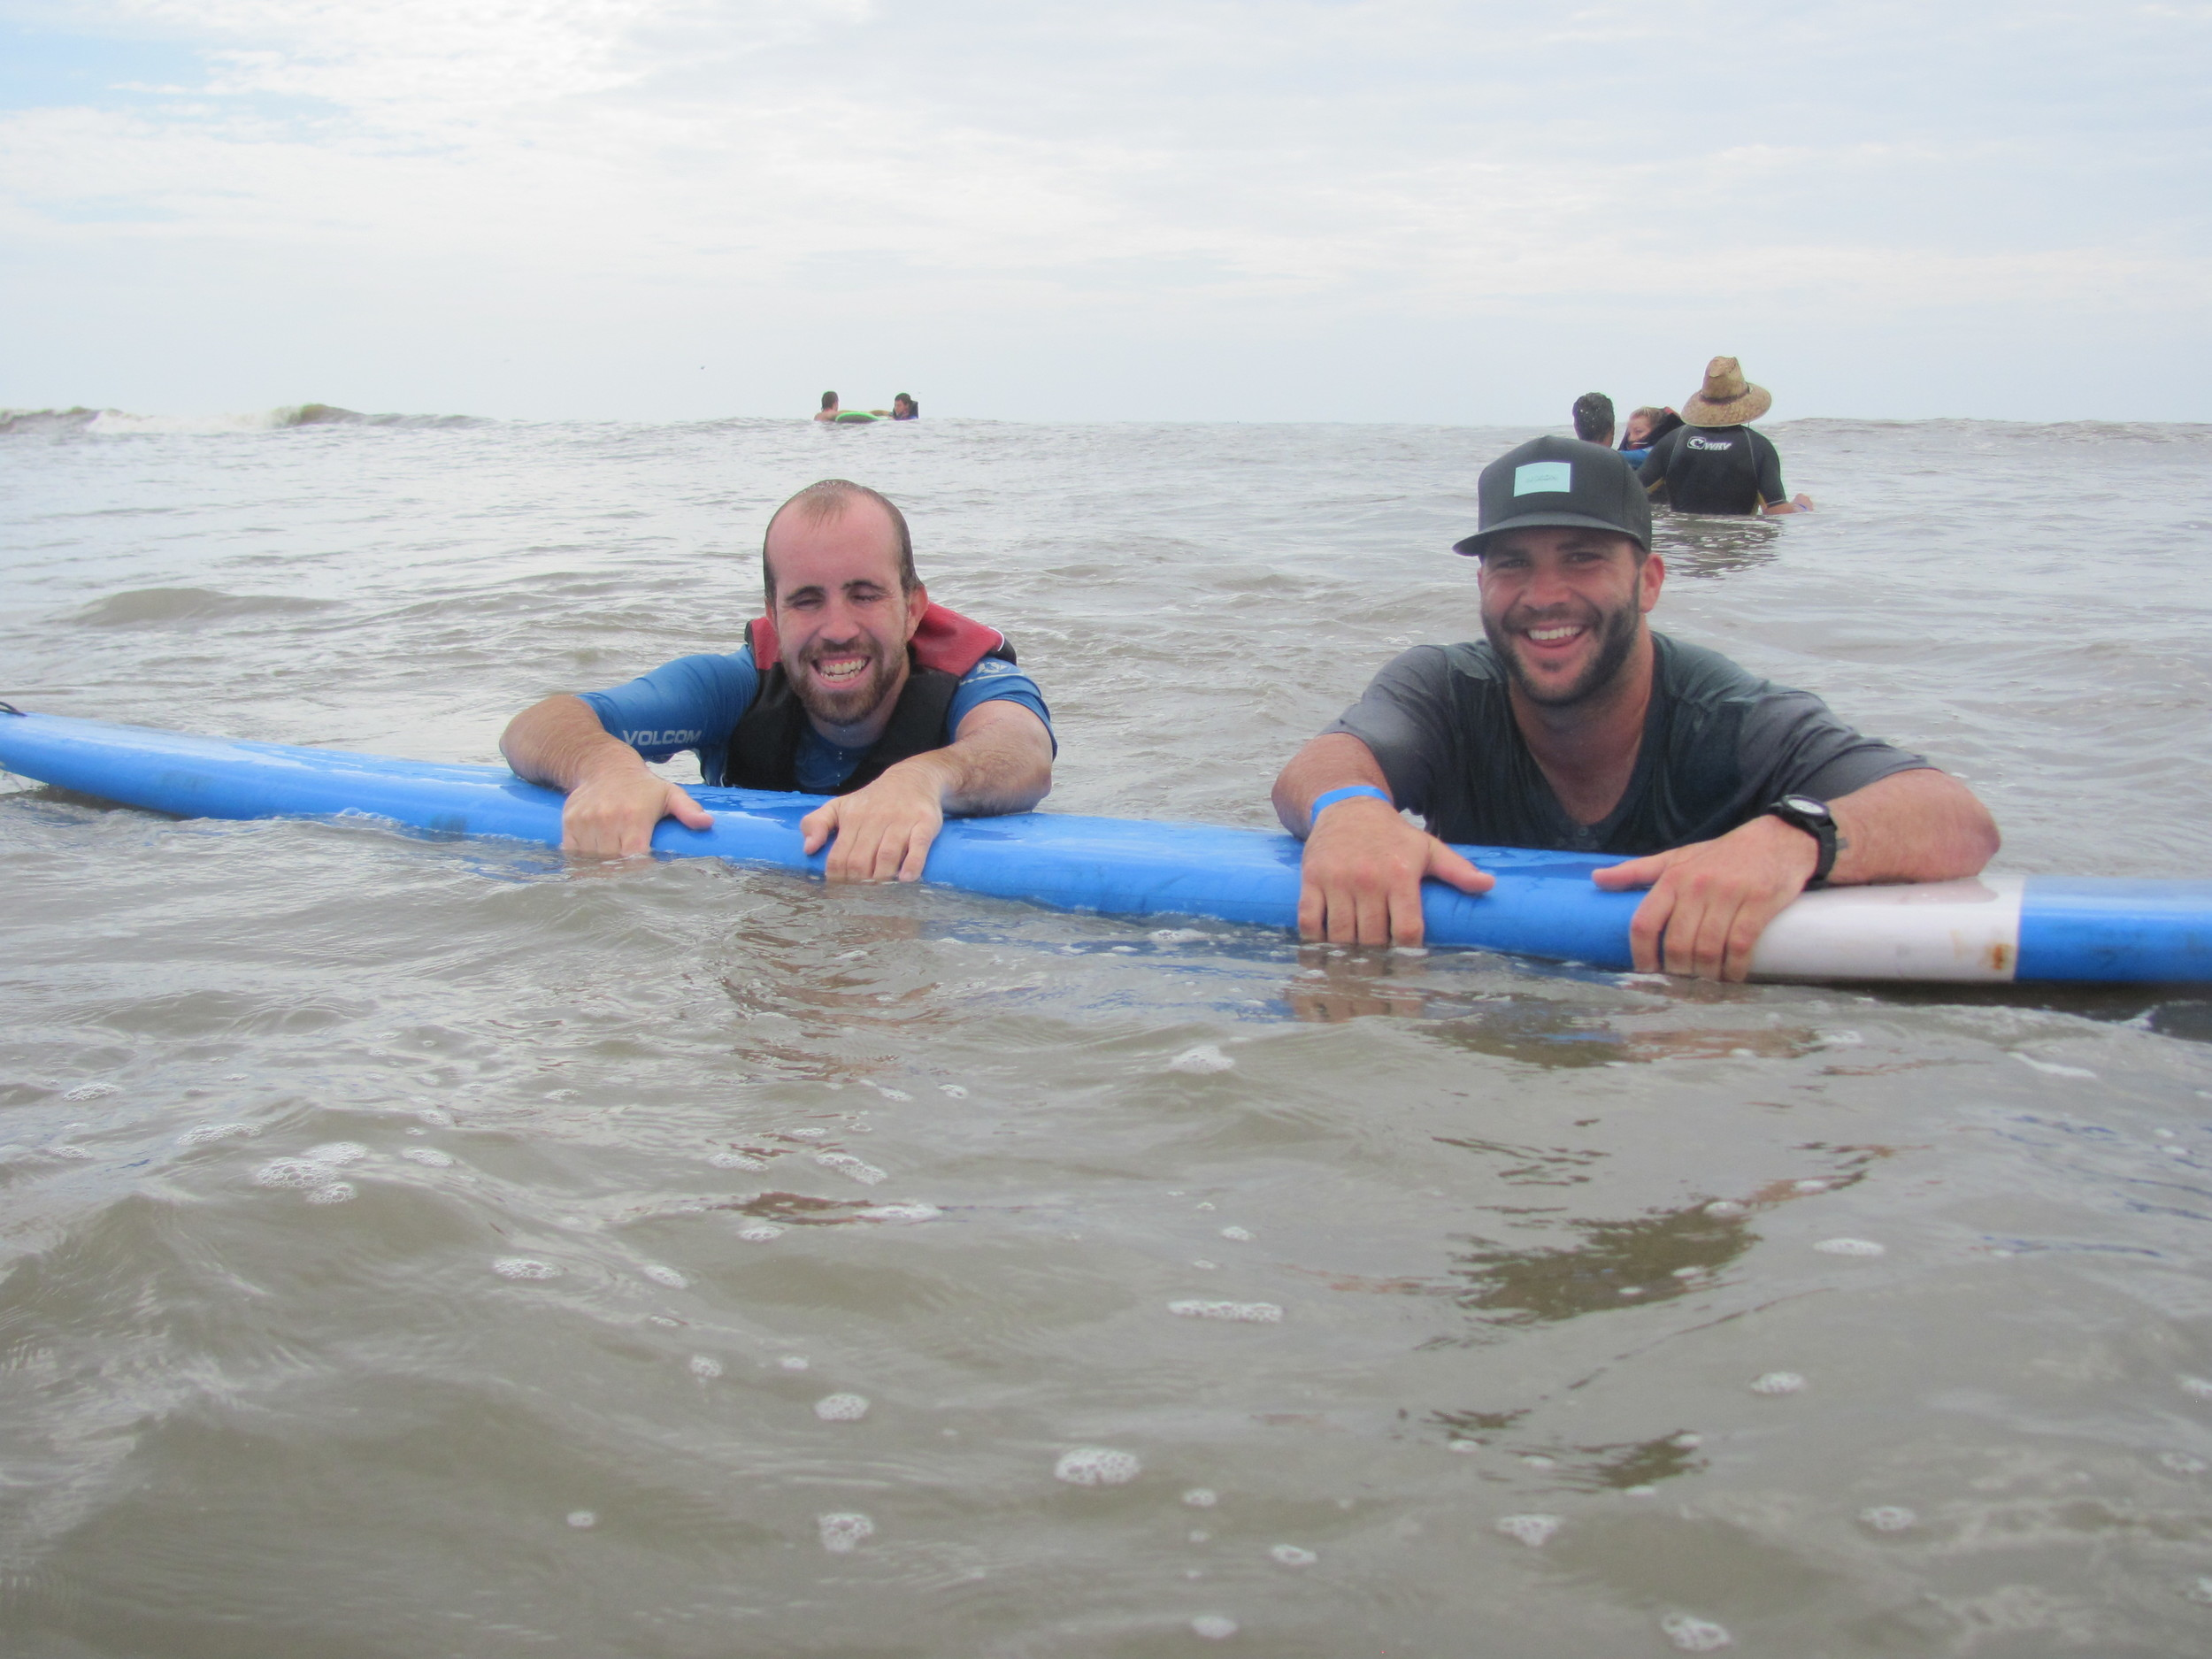 Jacksonville Jaguars quarterback Blake Bortles (right) helps a camper in the water.